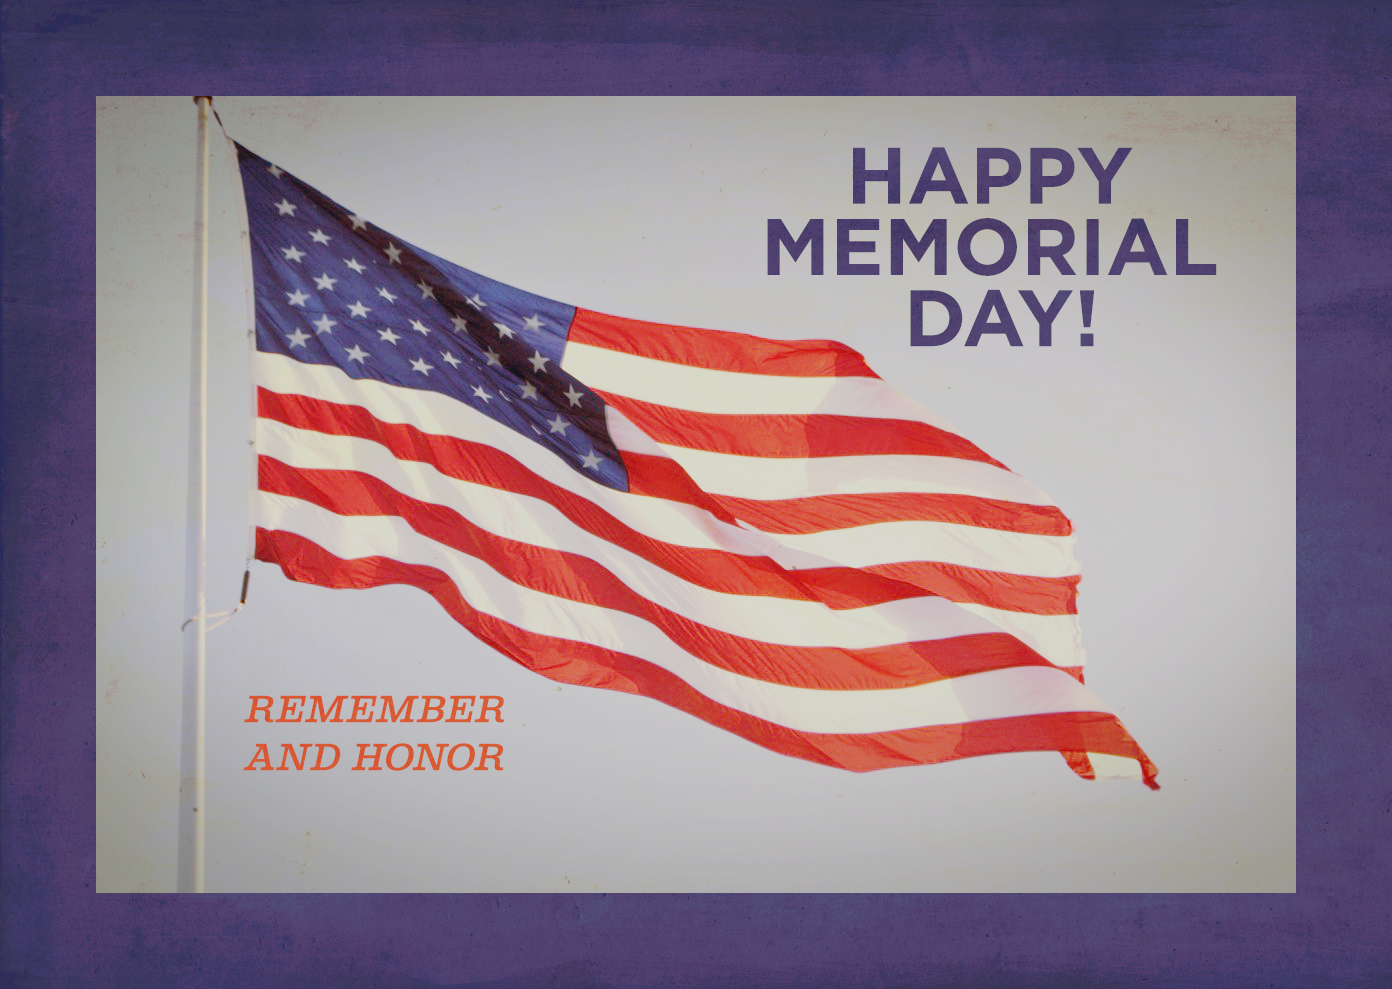 Happy Memorial Day! Remember and Honor